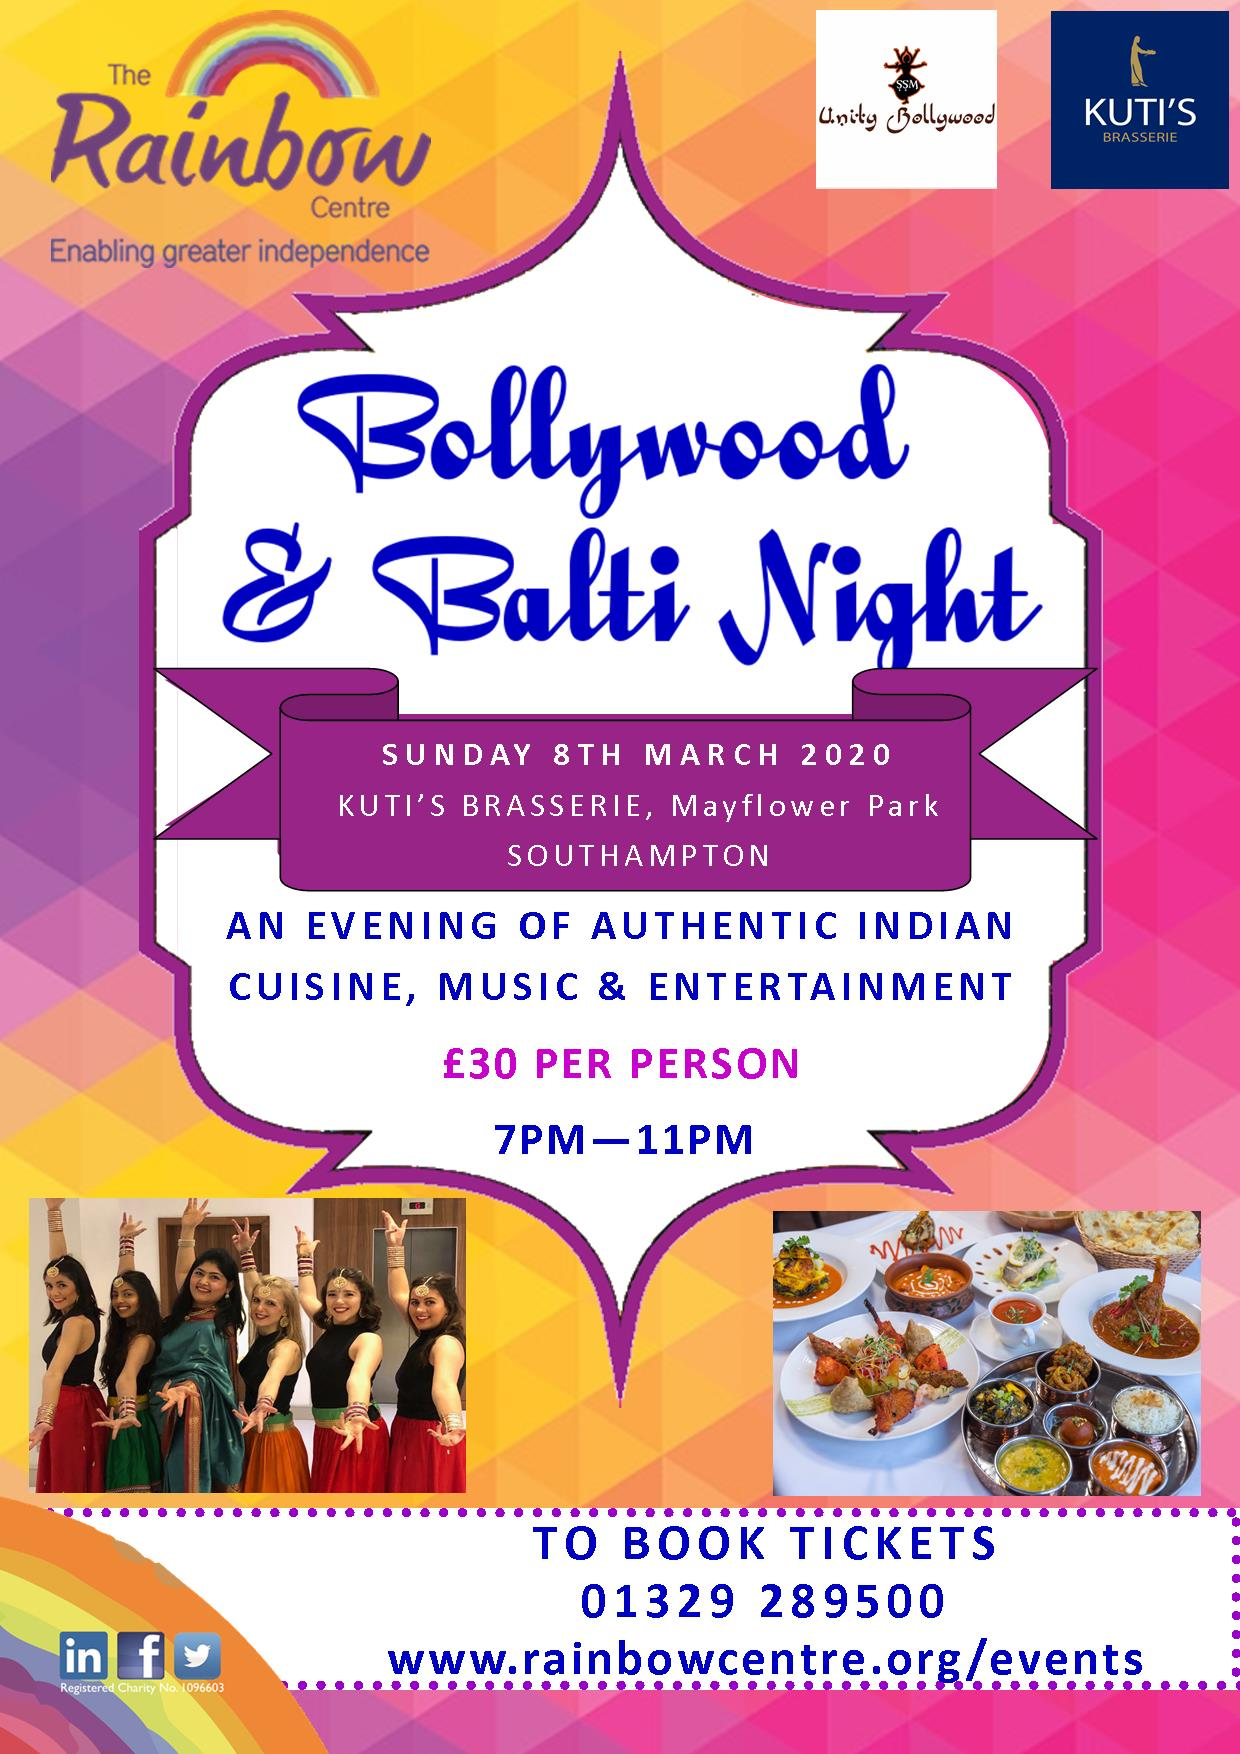 Bollywood & Balti Night